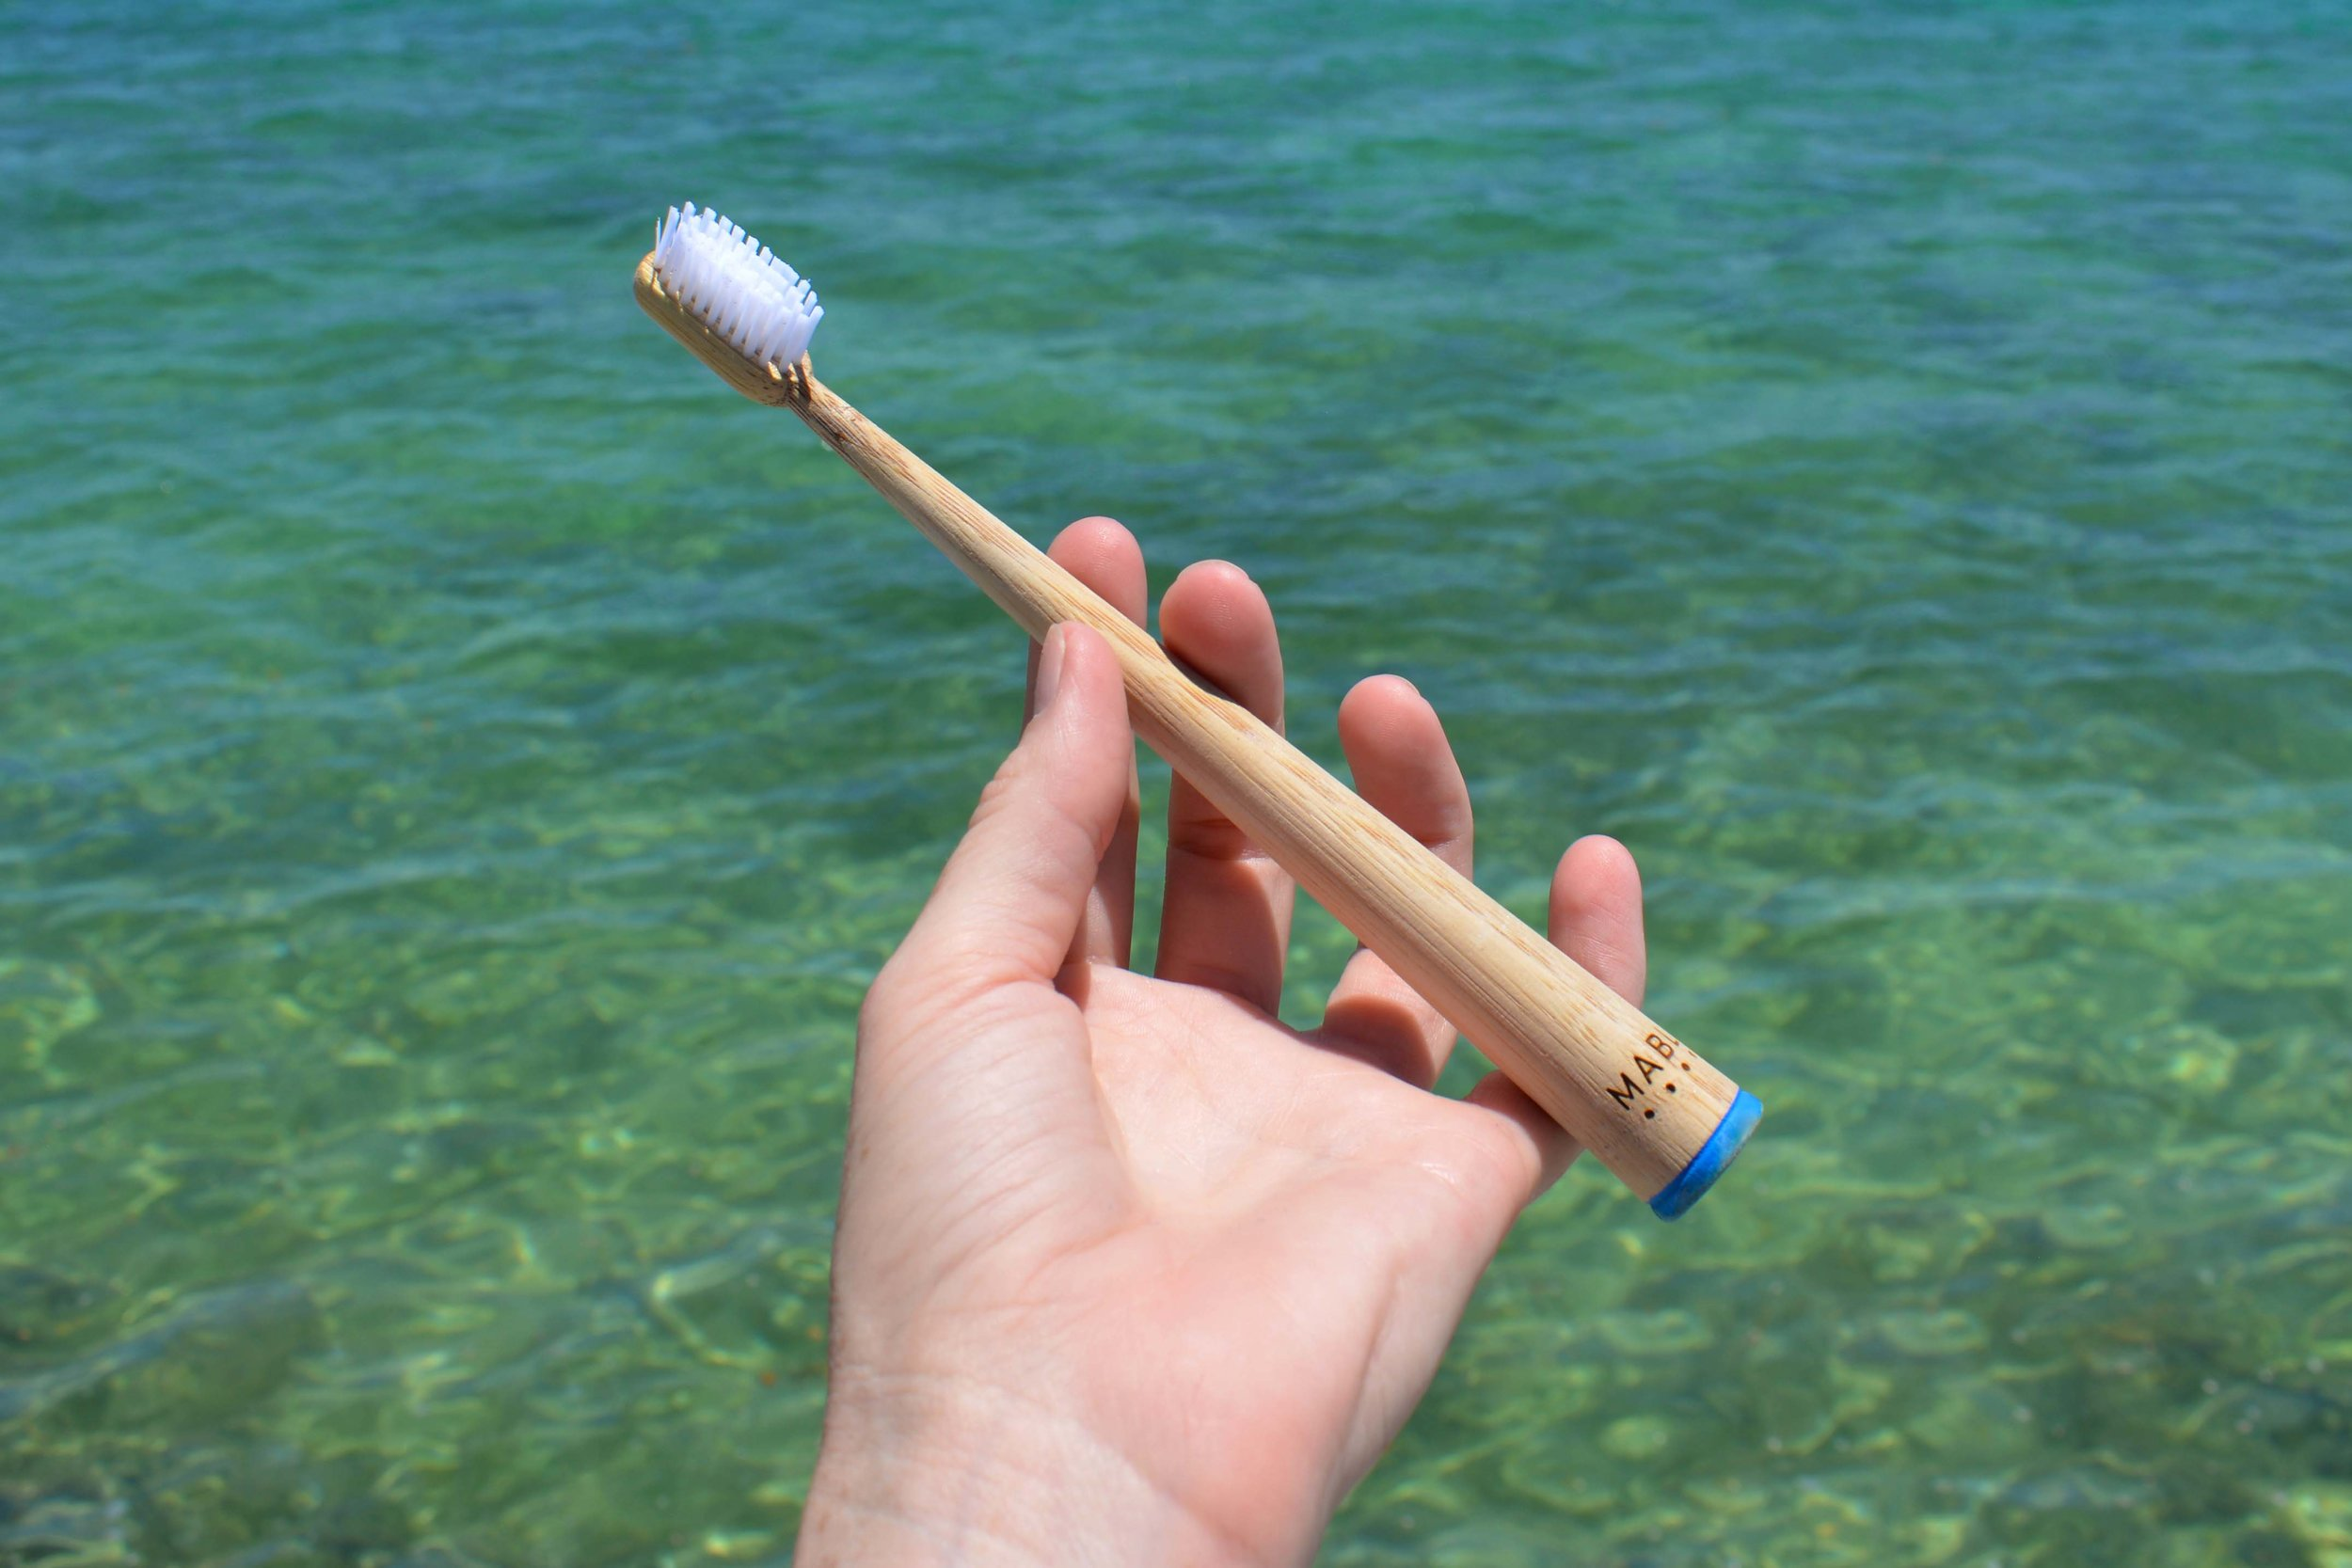 Brushes have biodegradable handles, plastic-free packaging and nontoxic ingredients.